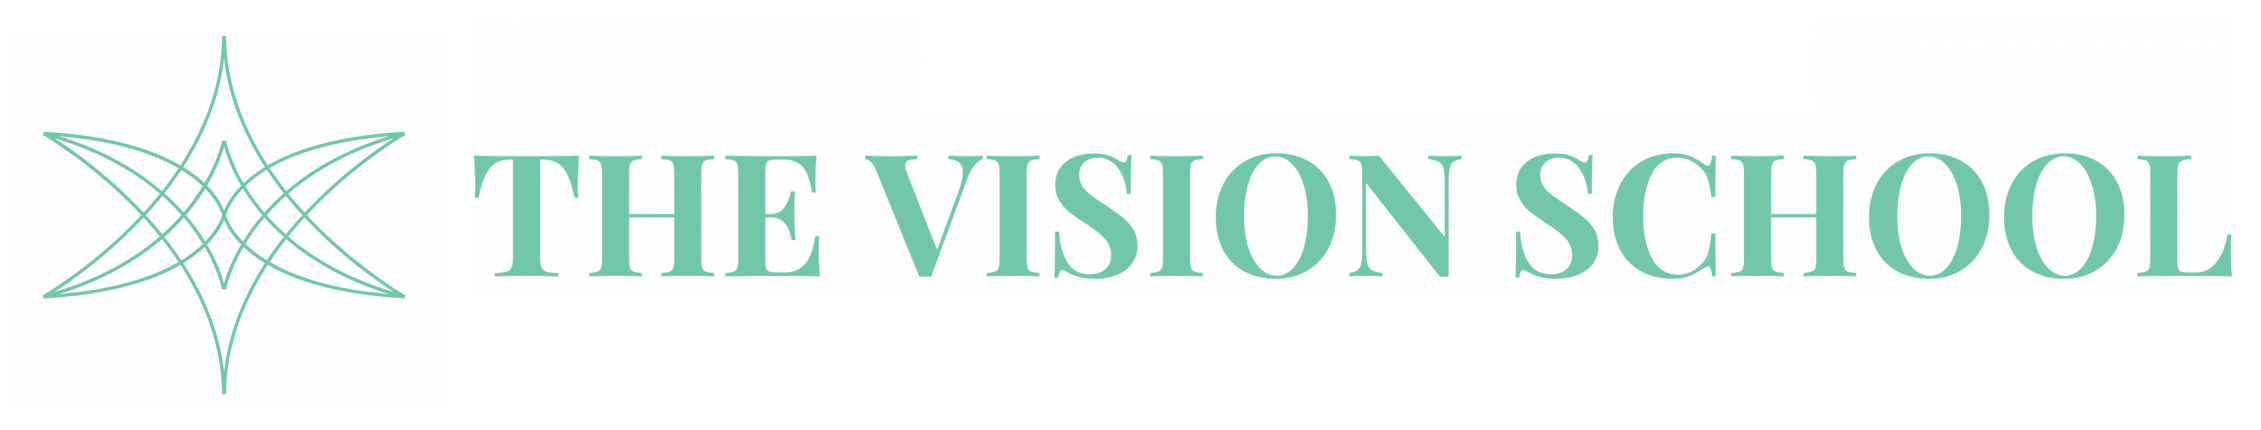 The Vision School